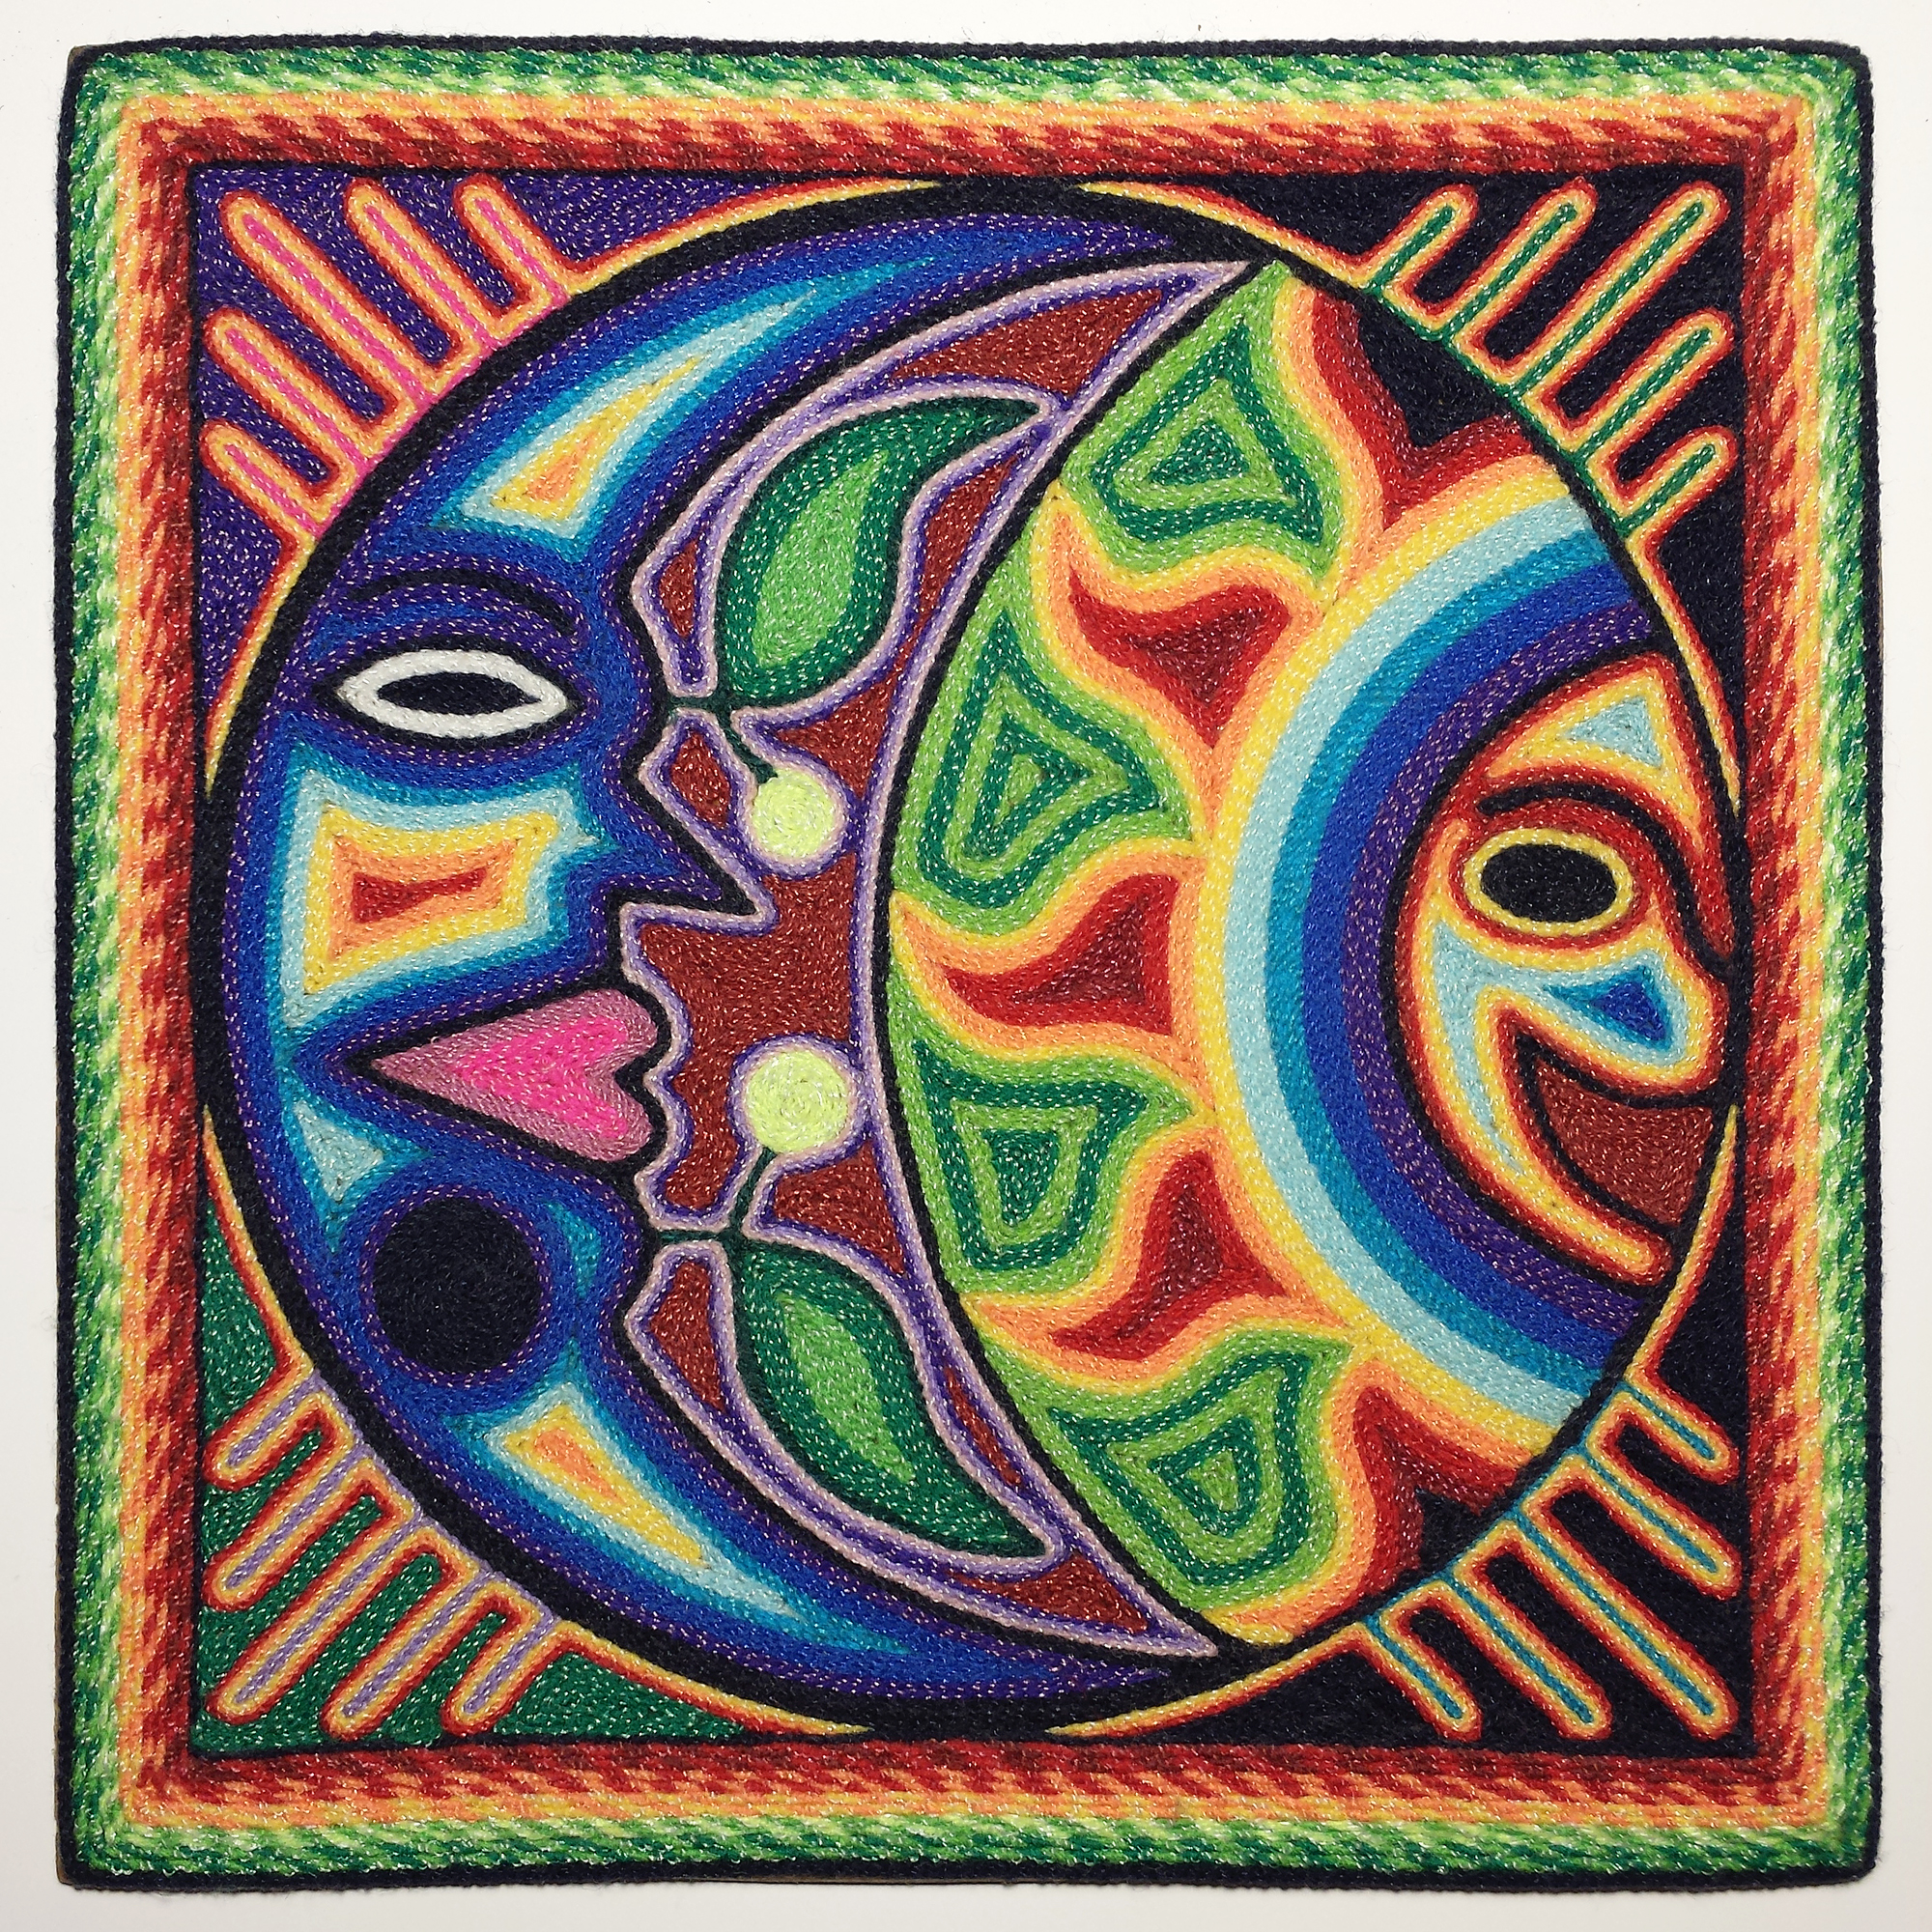 Huichol Yarn Painting by BlueLiquorice on DeviantArt